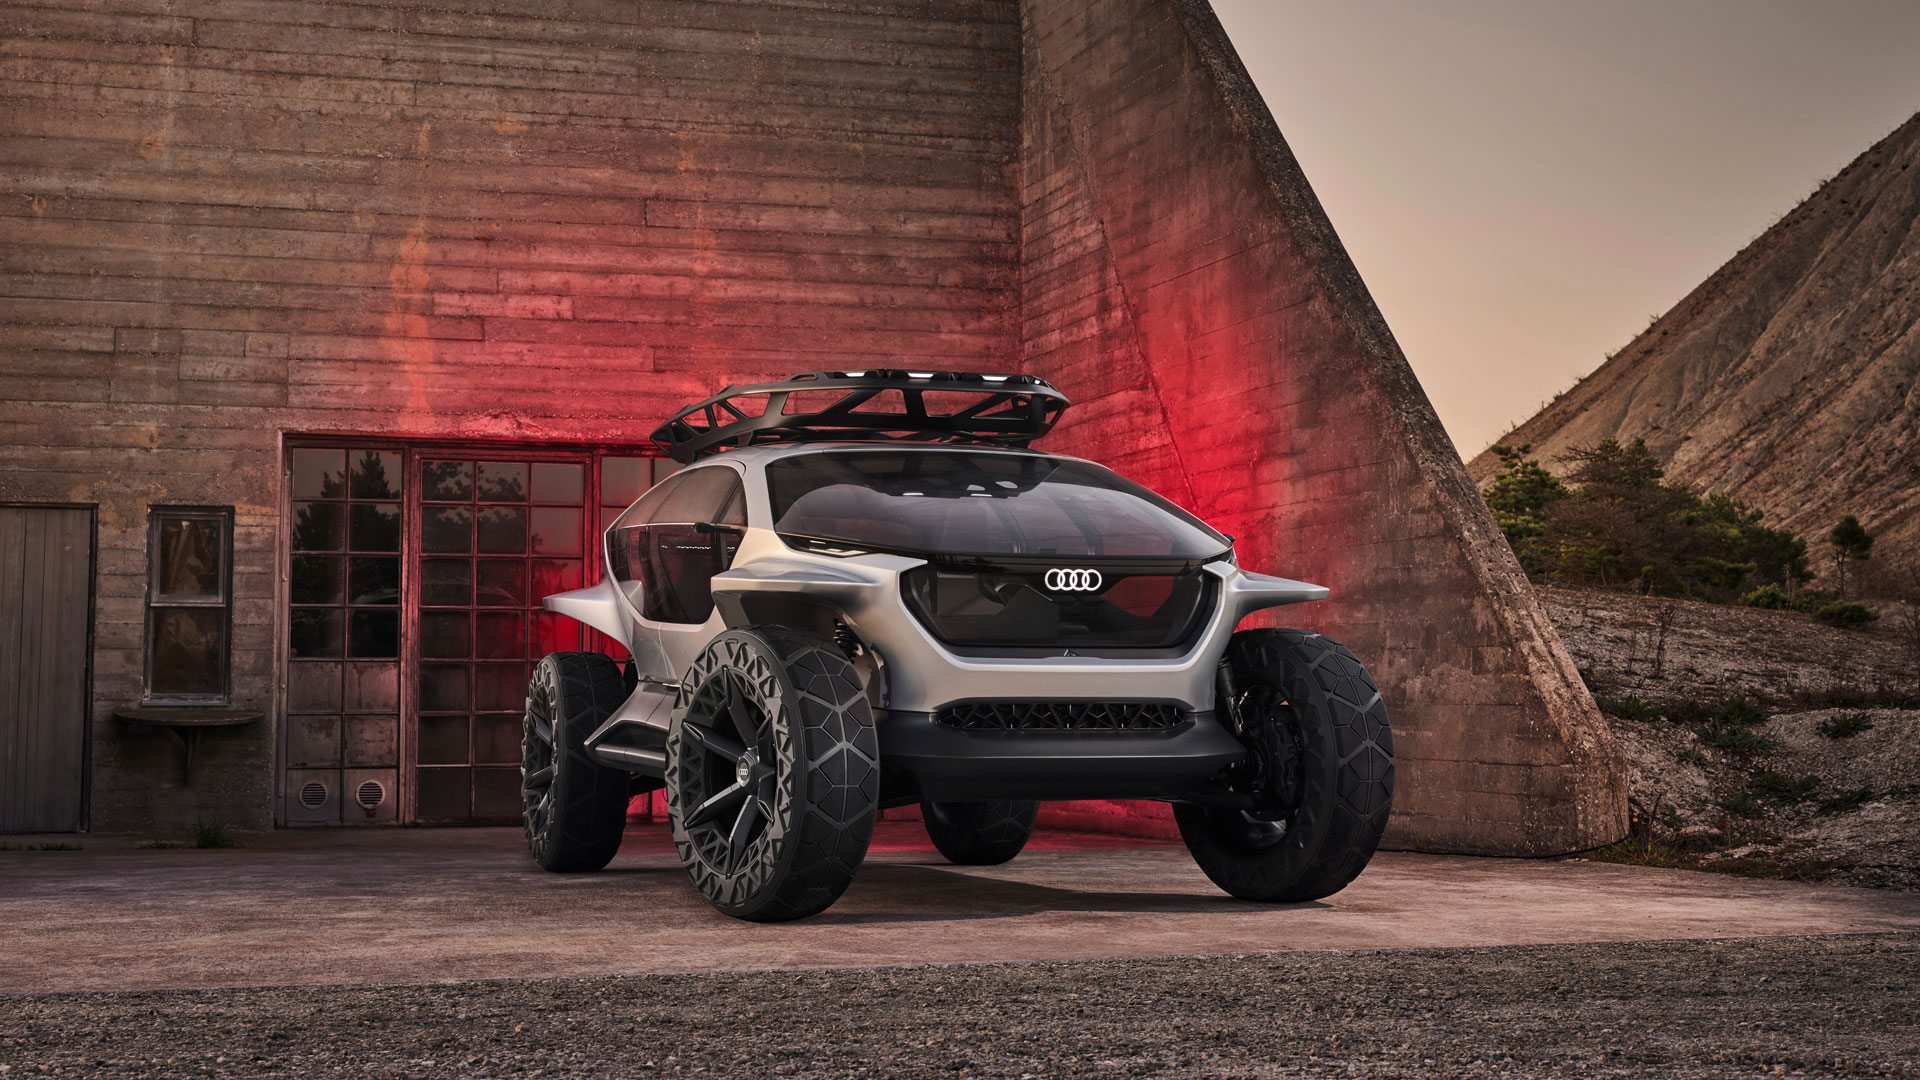 Image result for audi trail ai